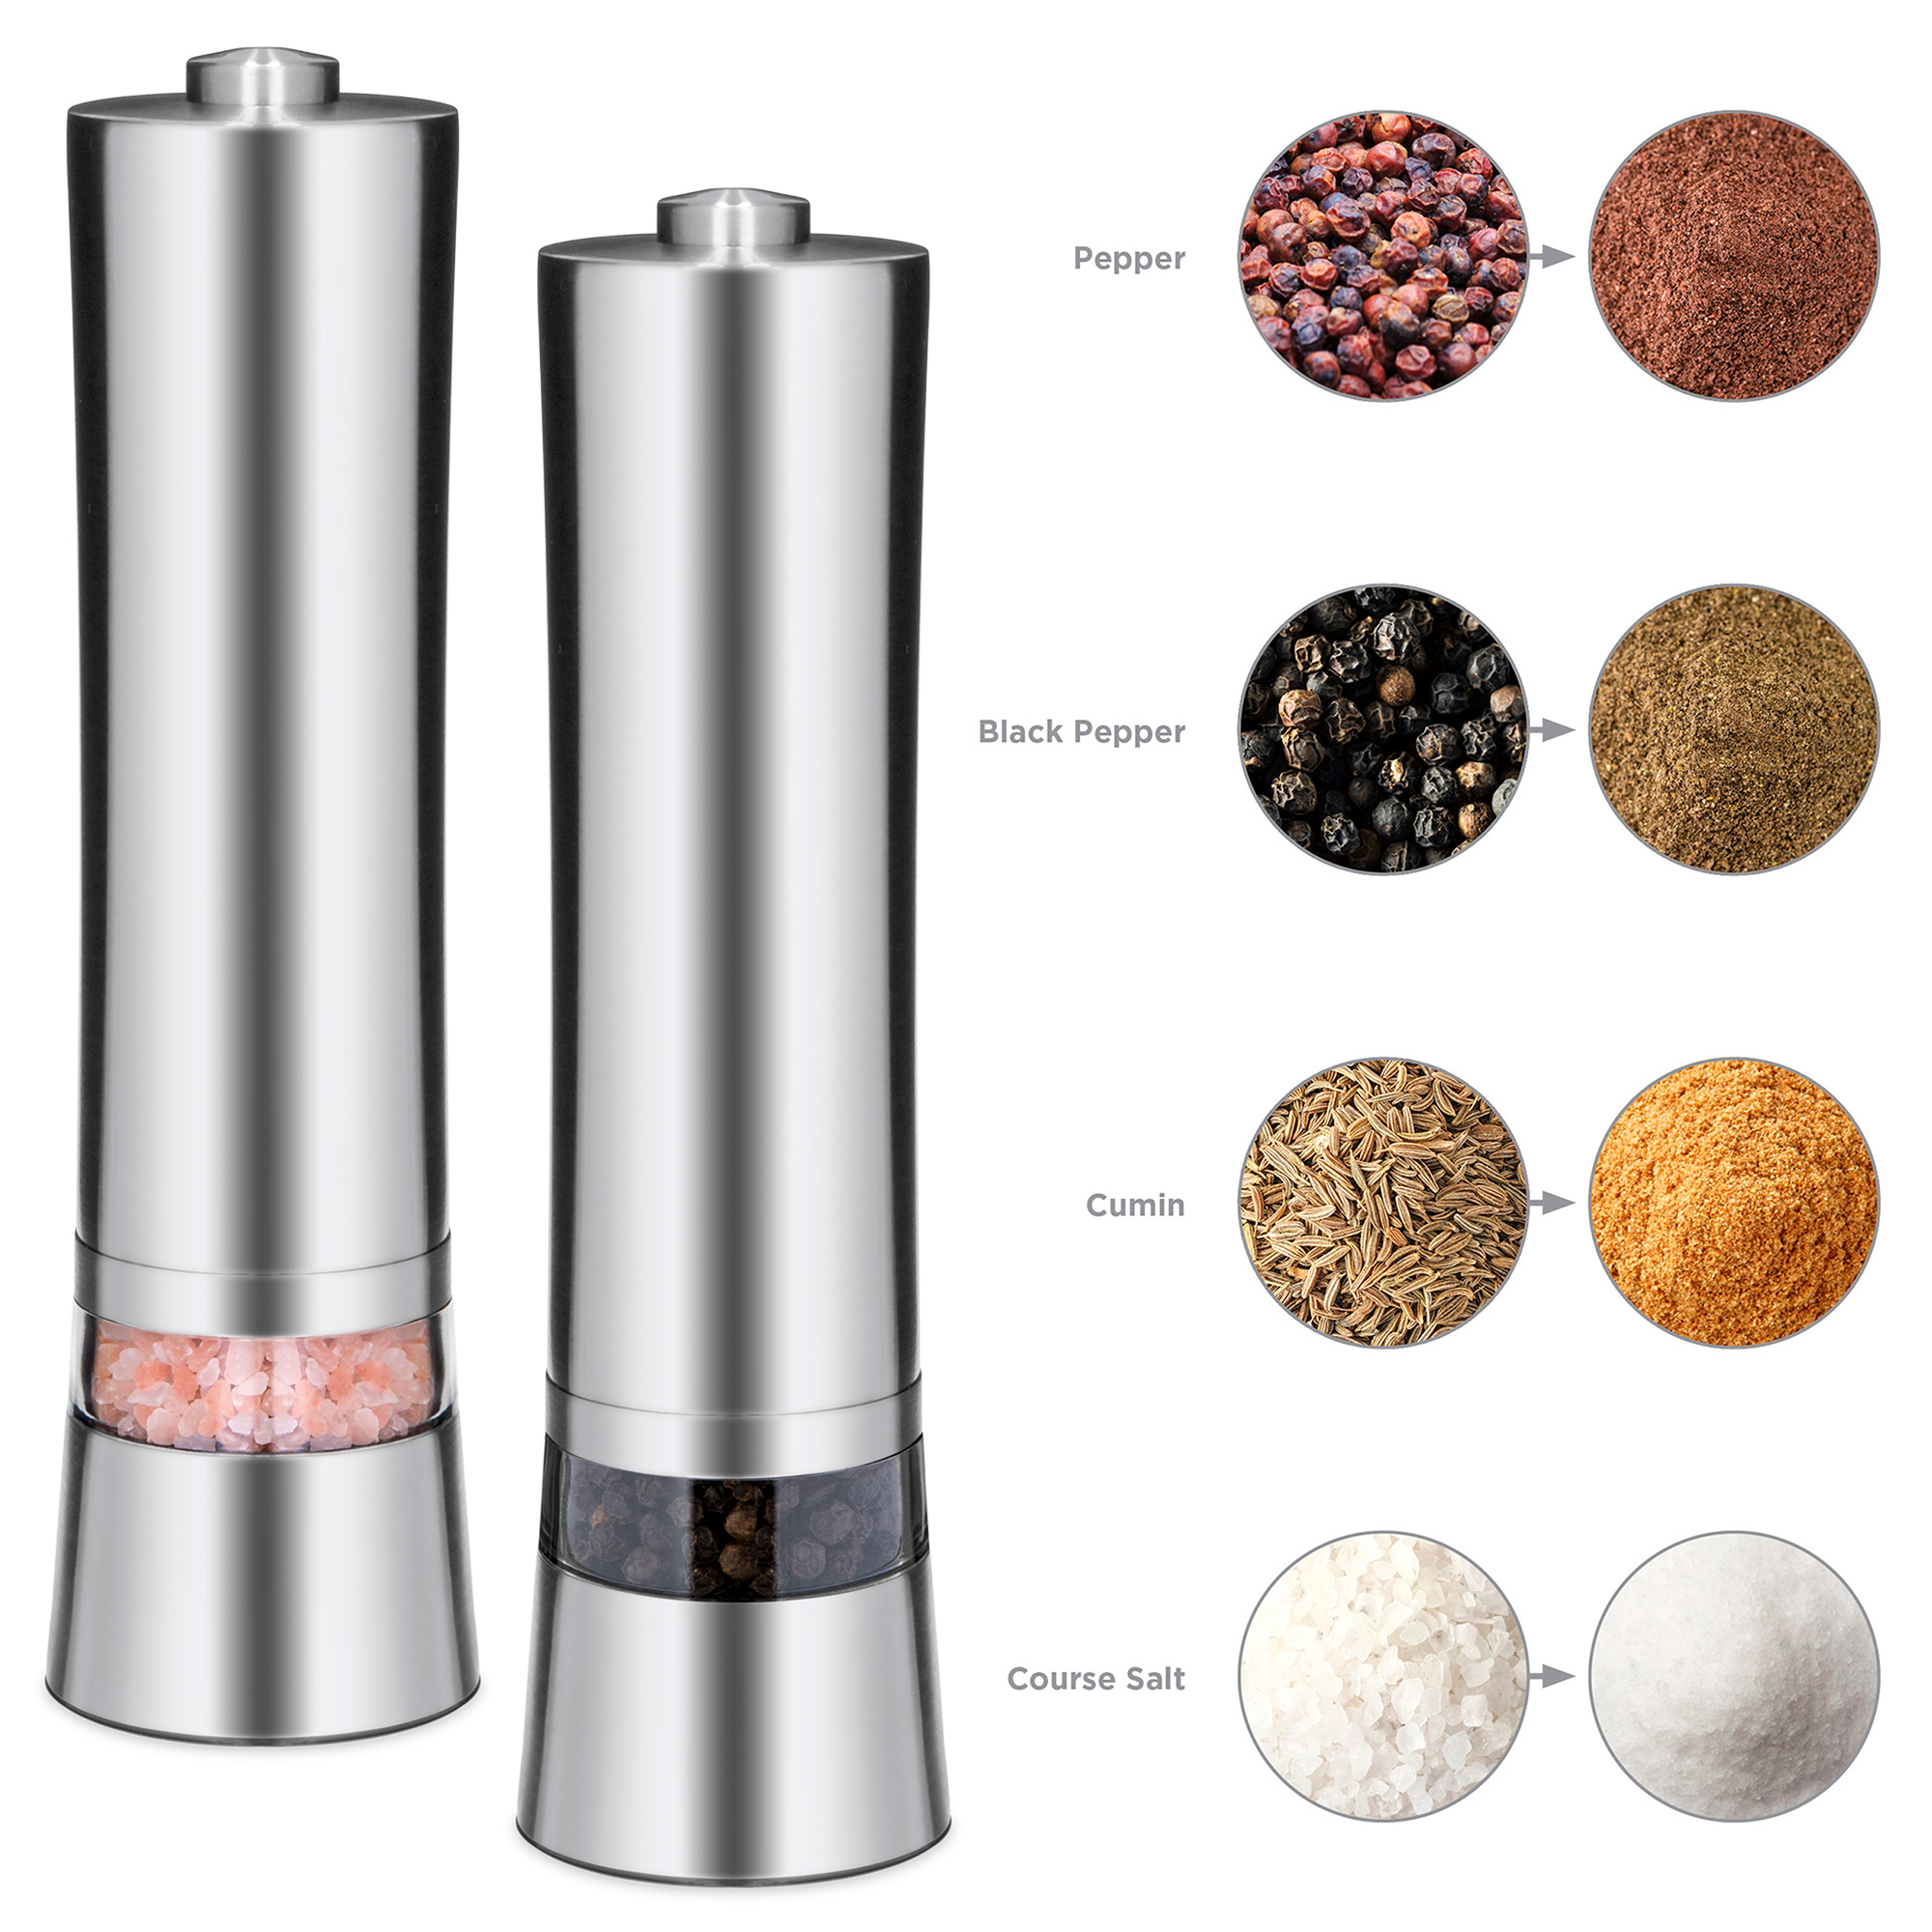 Best Choice Products Set of 2 Stainless Steel Adjustable Pepper Mill Electronic Salt, Pepper, Spice Grinder... by Best Choice Products